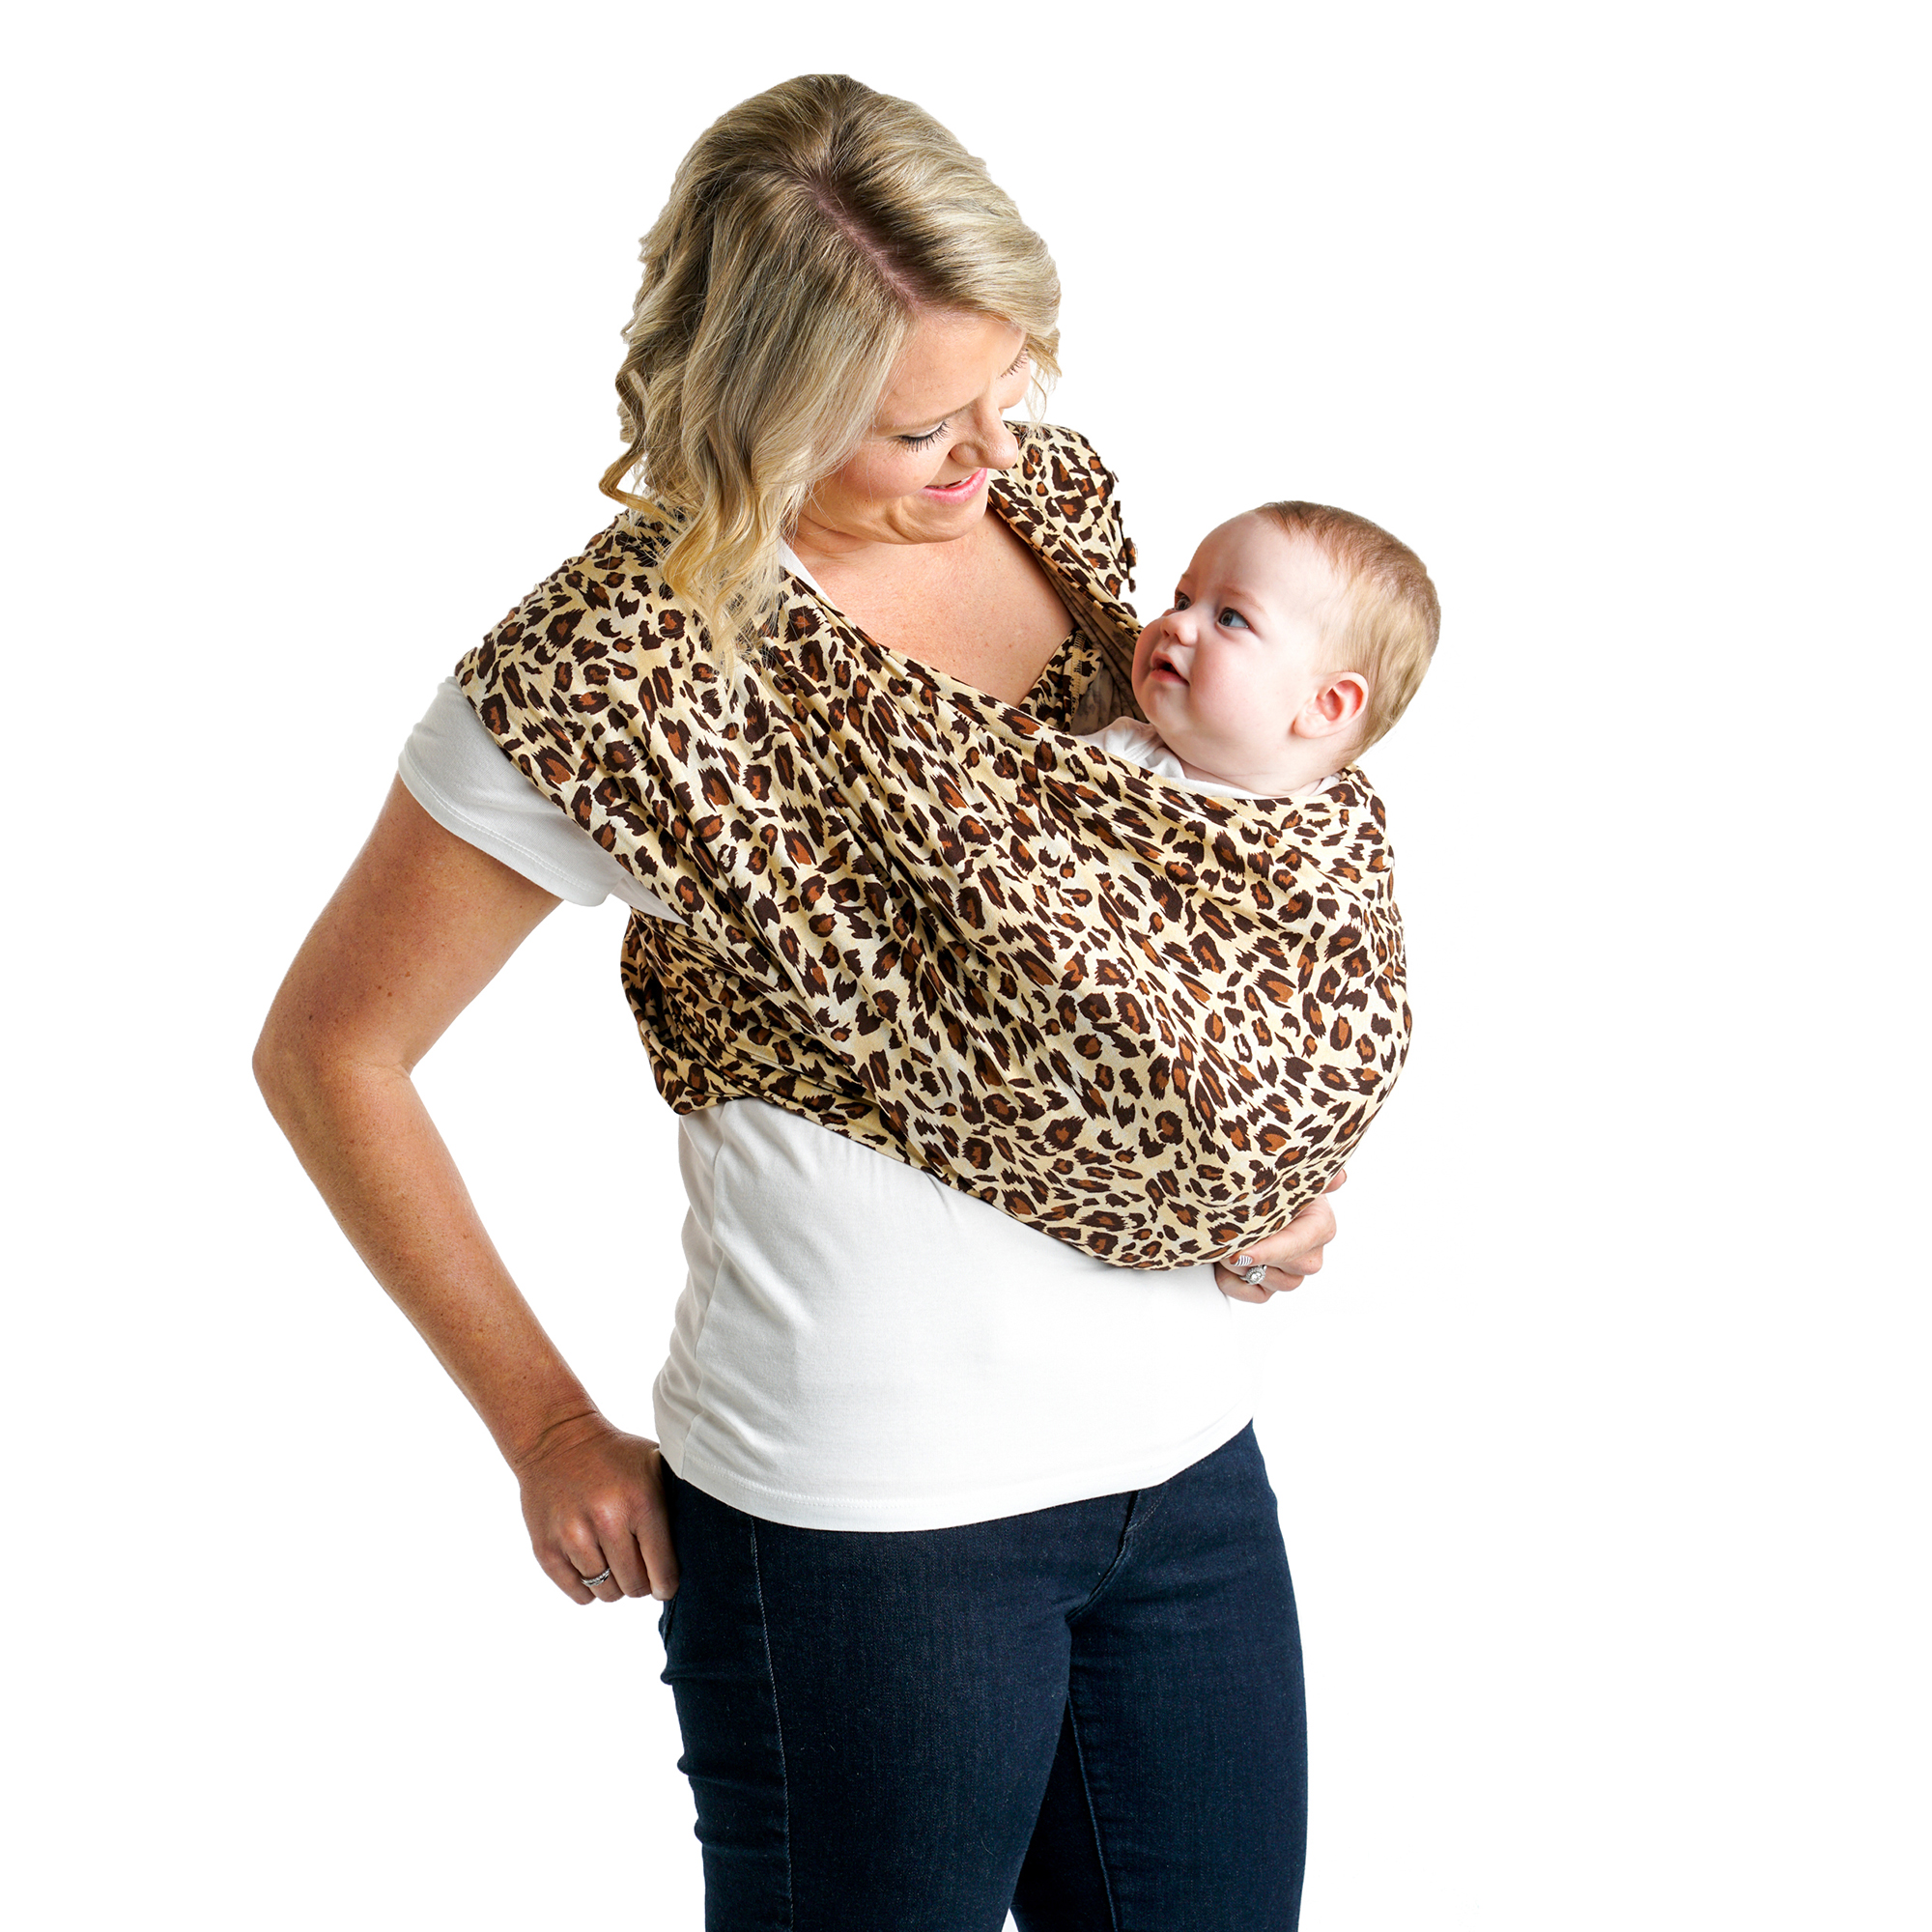 Warm Cocoa X-Large Baby K/'tan ORIGINAL Cotton Wrap Baby Carrier